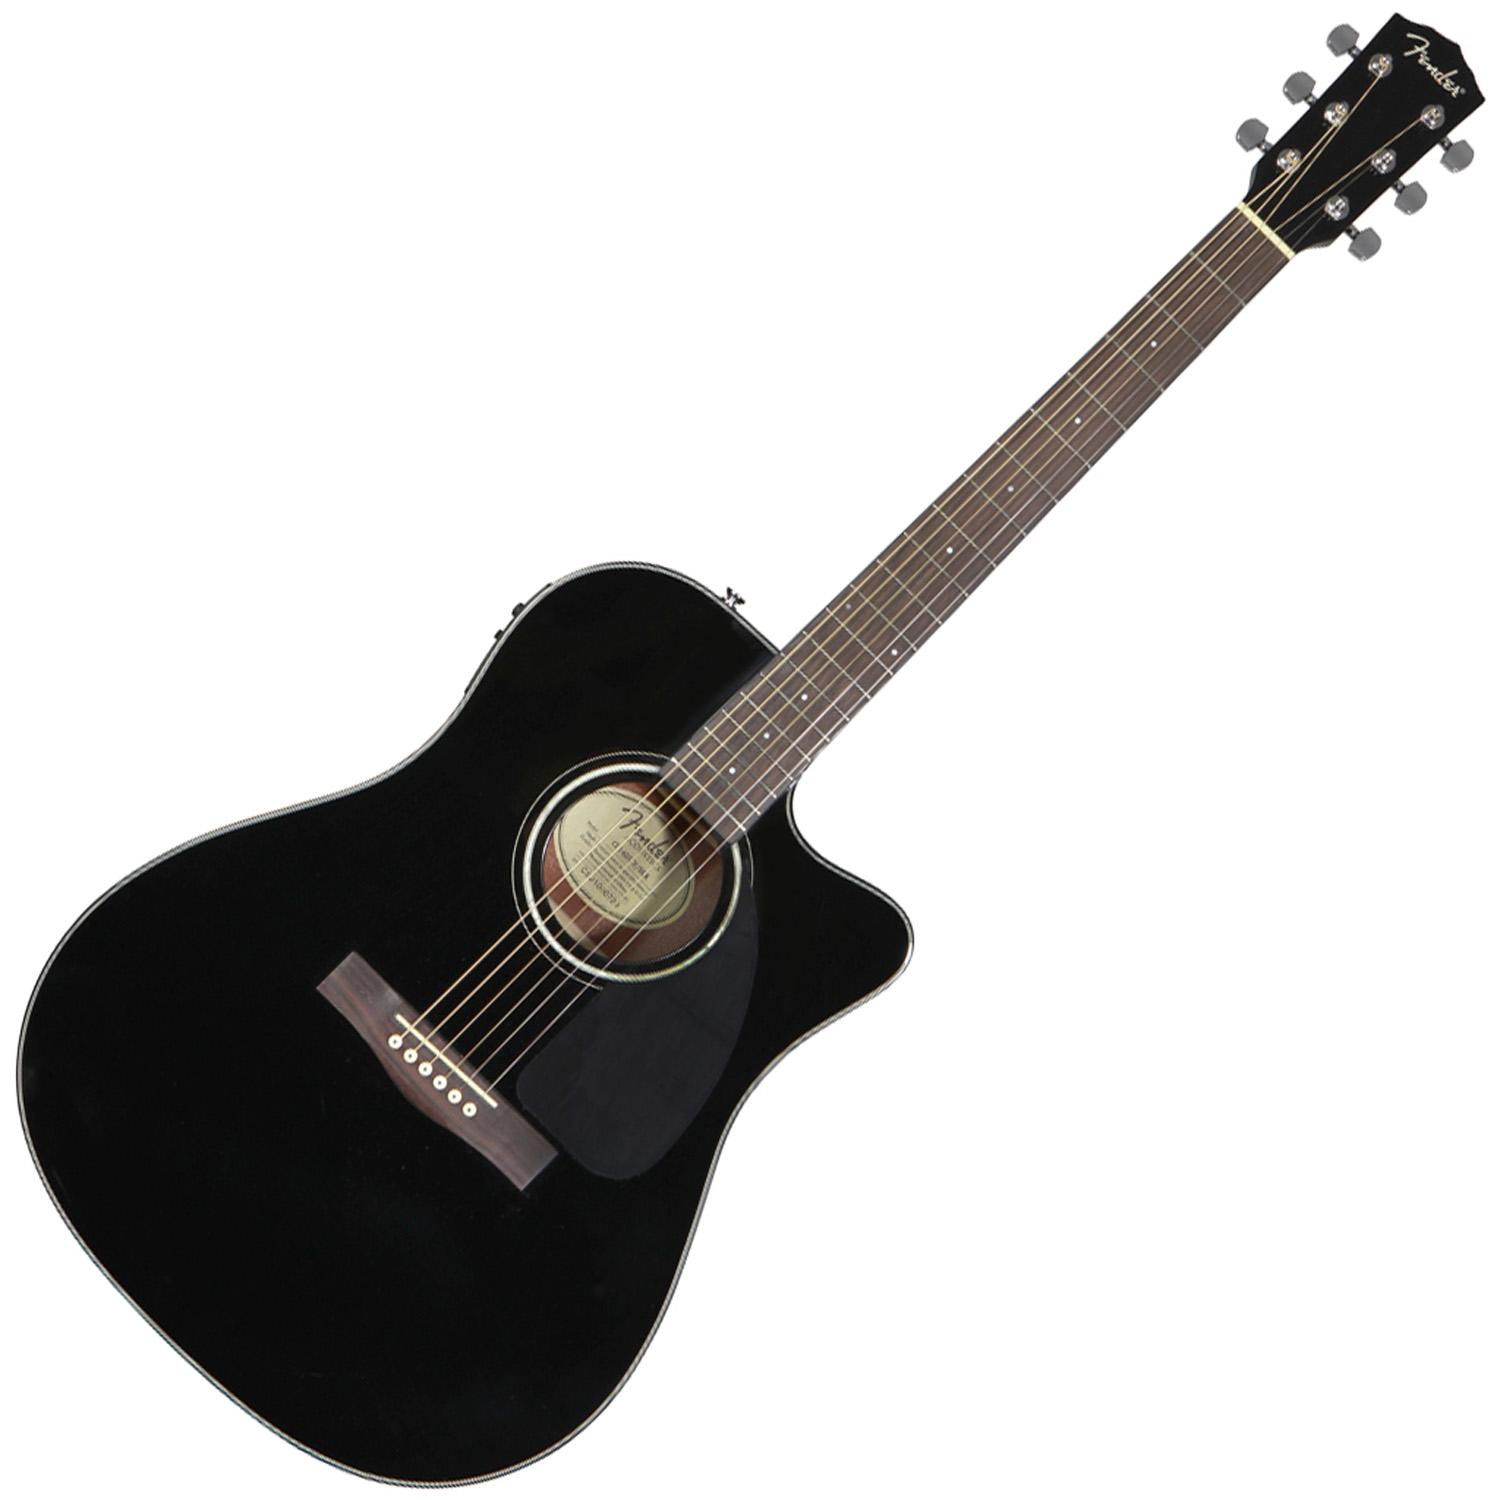 Forbes Store Acoustic-Electric Guitars: Price in Pakistan | Forbes Store  Acoustic-Electric Guitars Installment Plans - daraz.pk